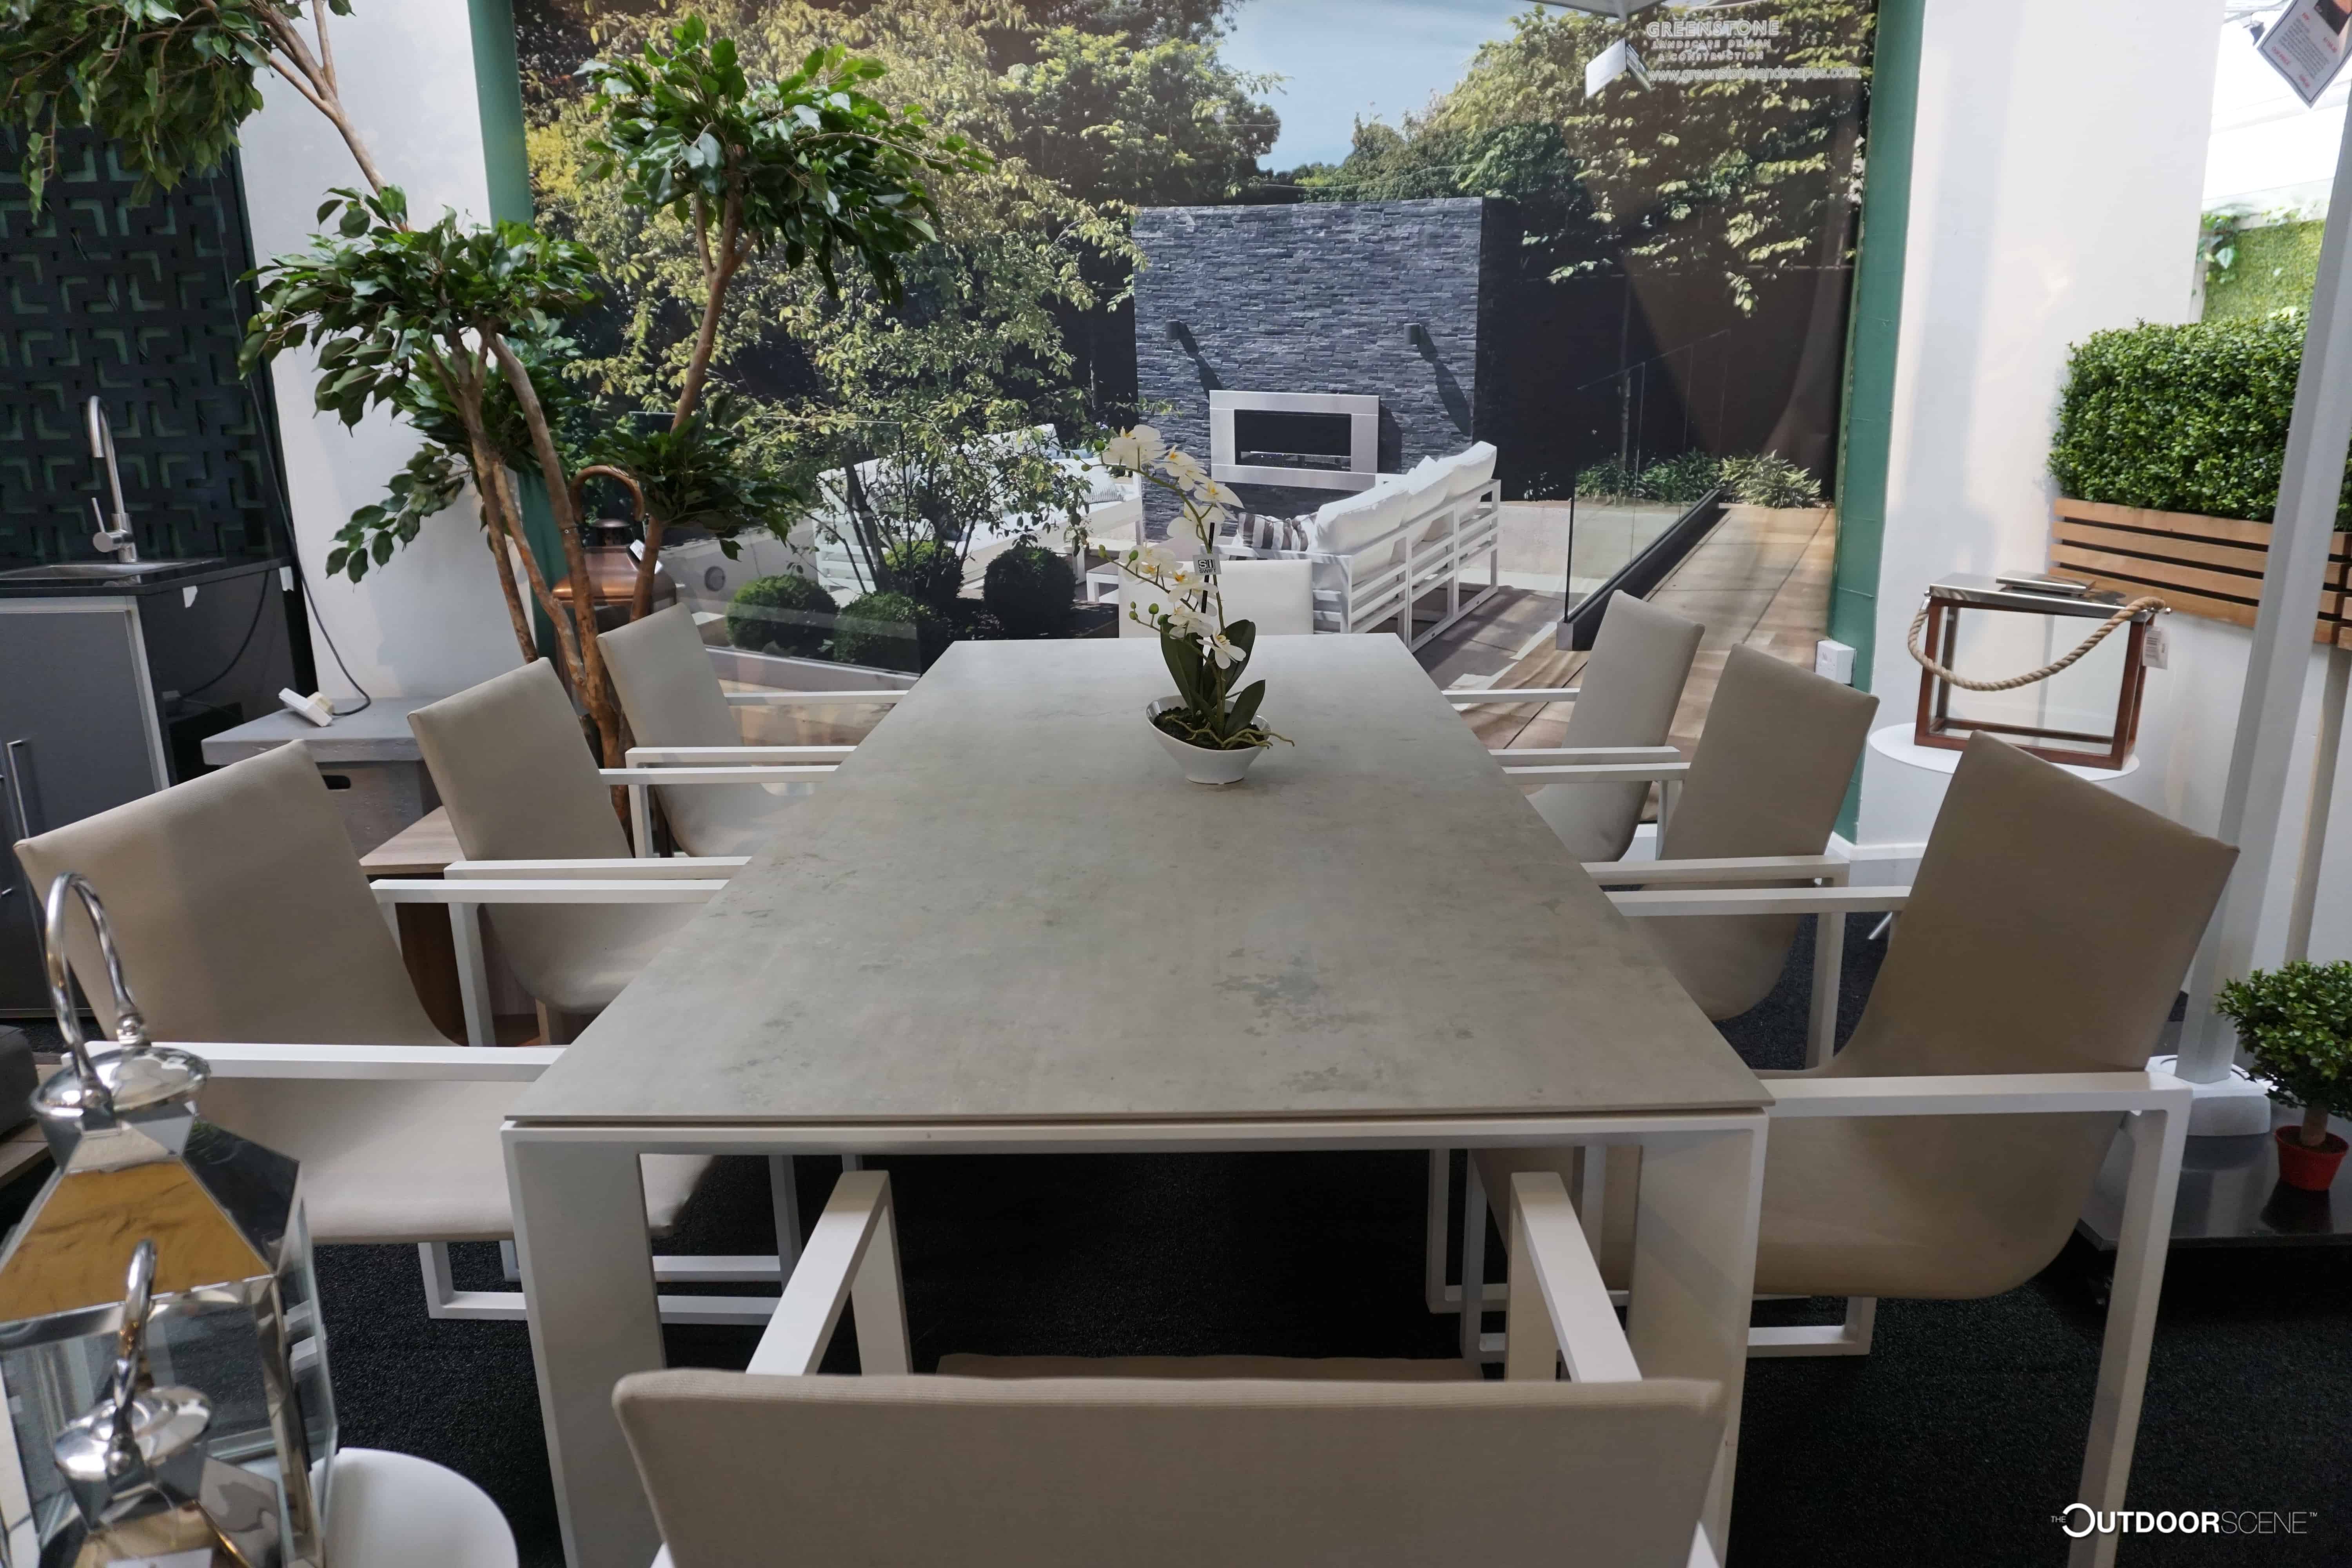 Fermo Dining Table set with 8 Chairs - White   Garden ...